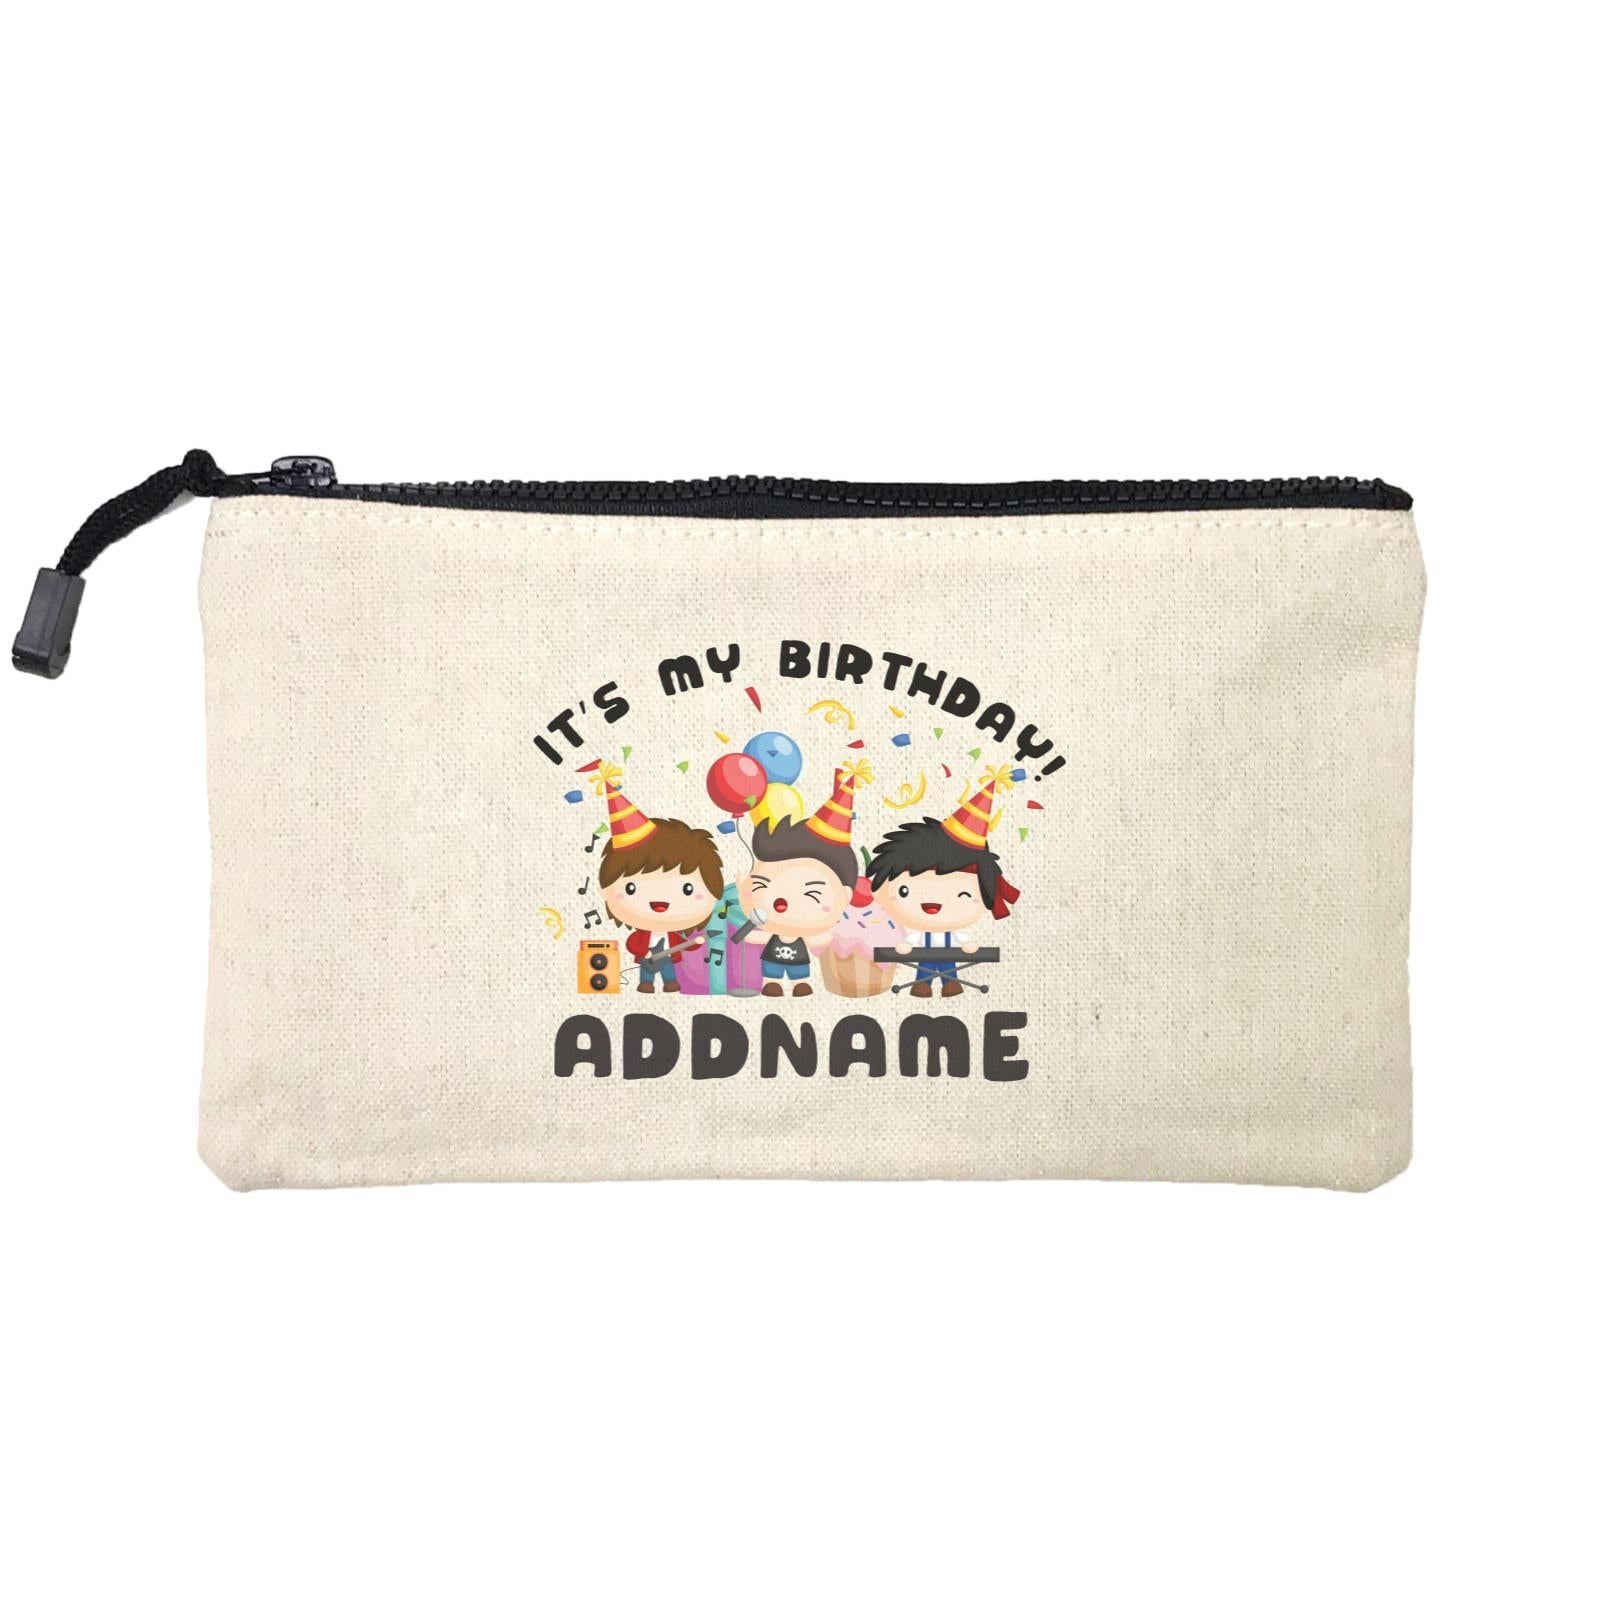 Birthday Music Band Boy Group It's My Bitrhday Addname Mini Accessories Stationery Pouch